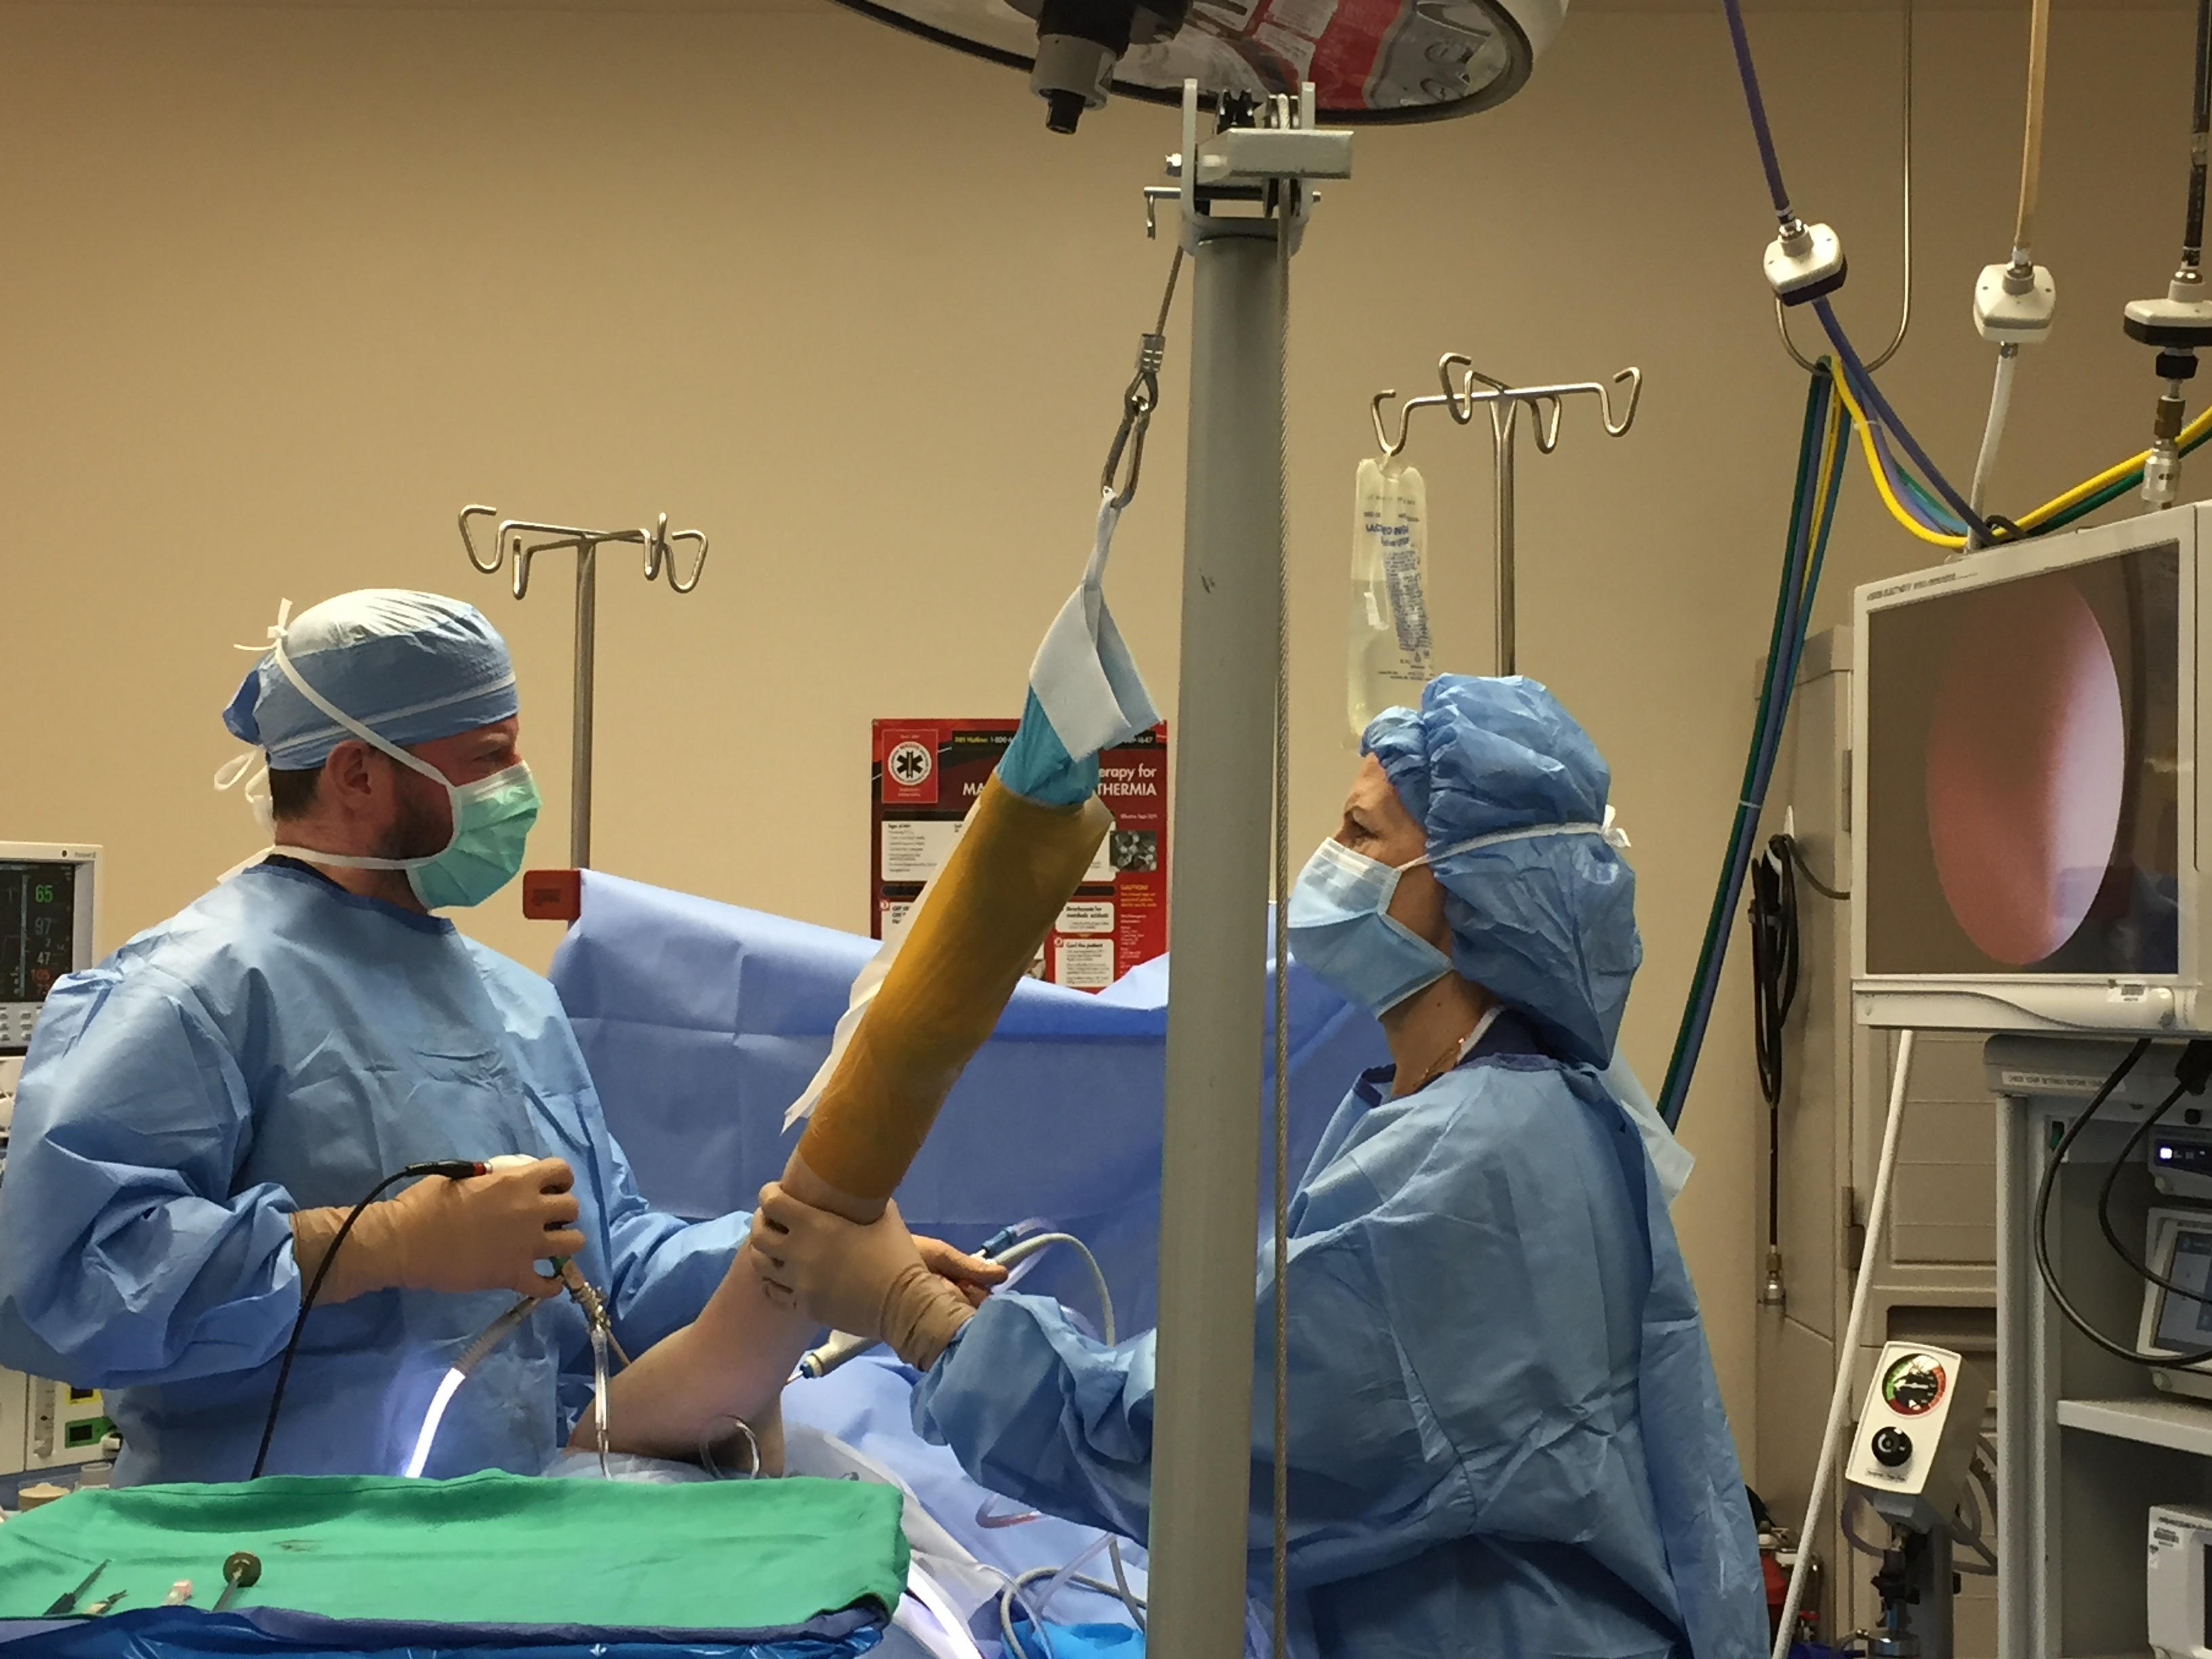 Dr. Seeds preforms a major arthroscopic shoulder stabilization.